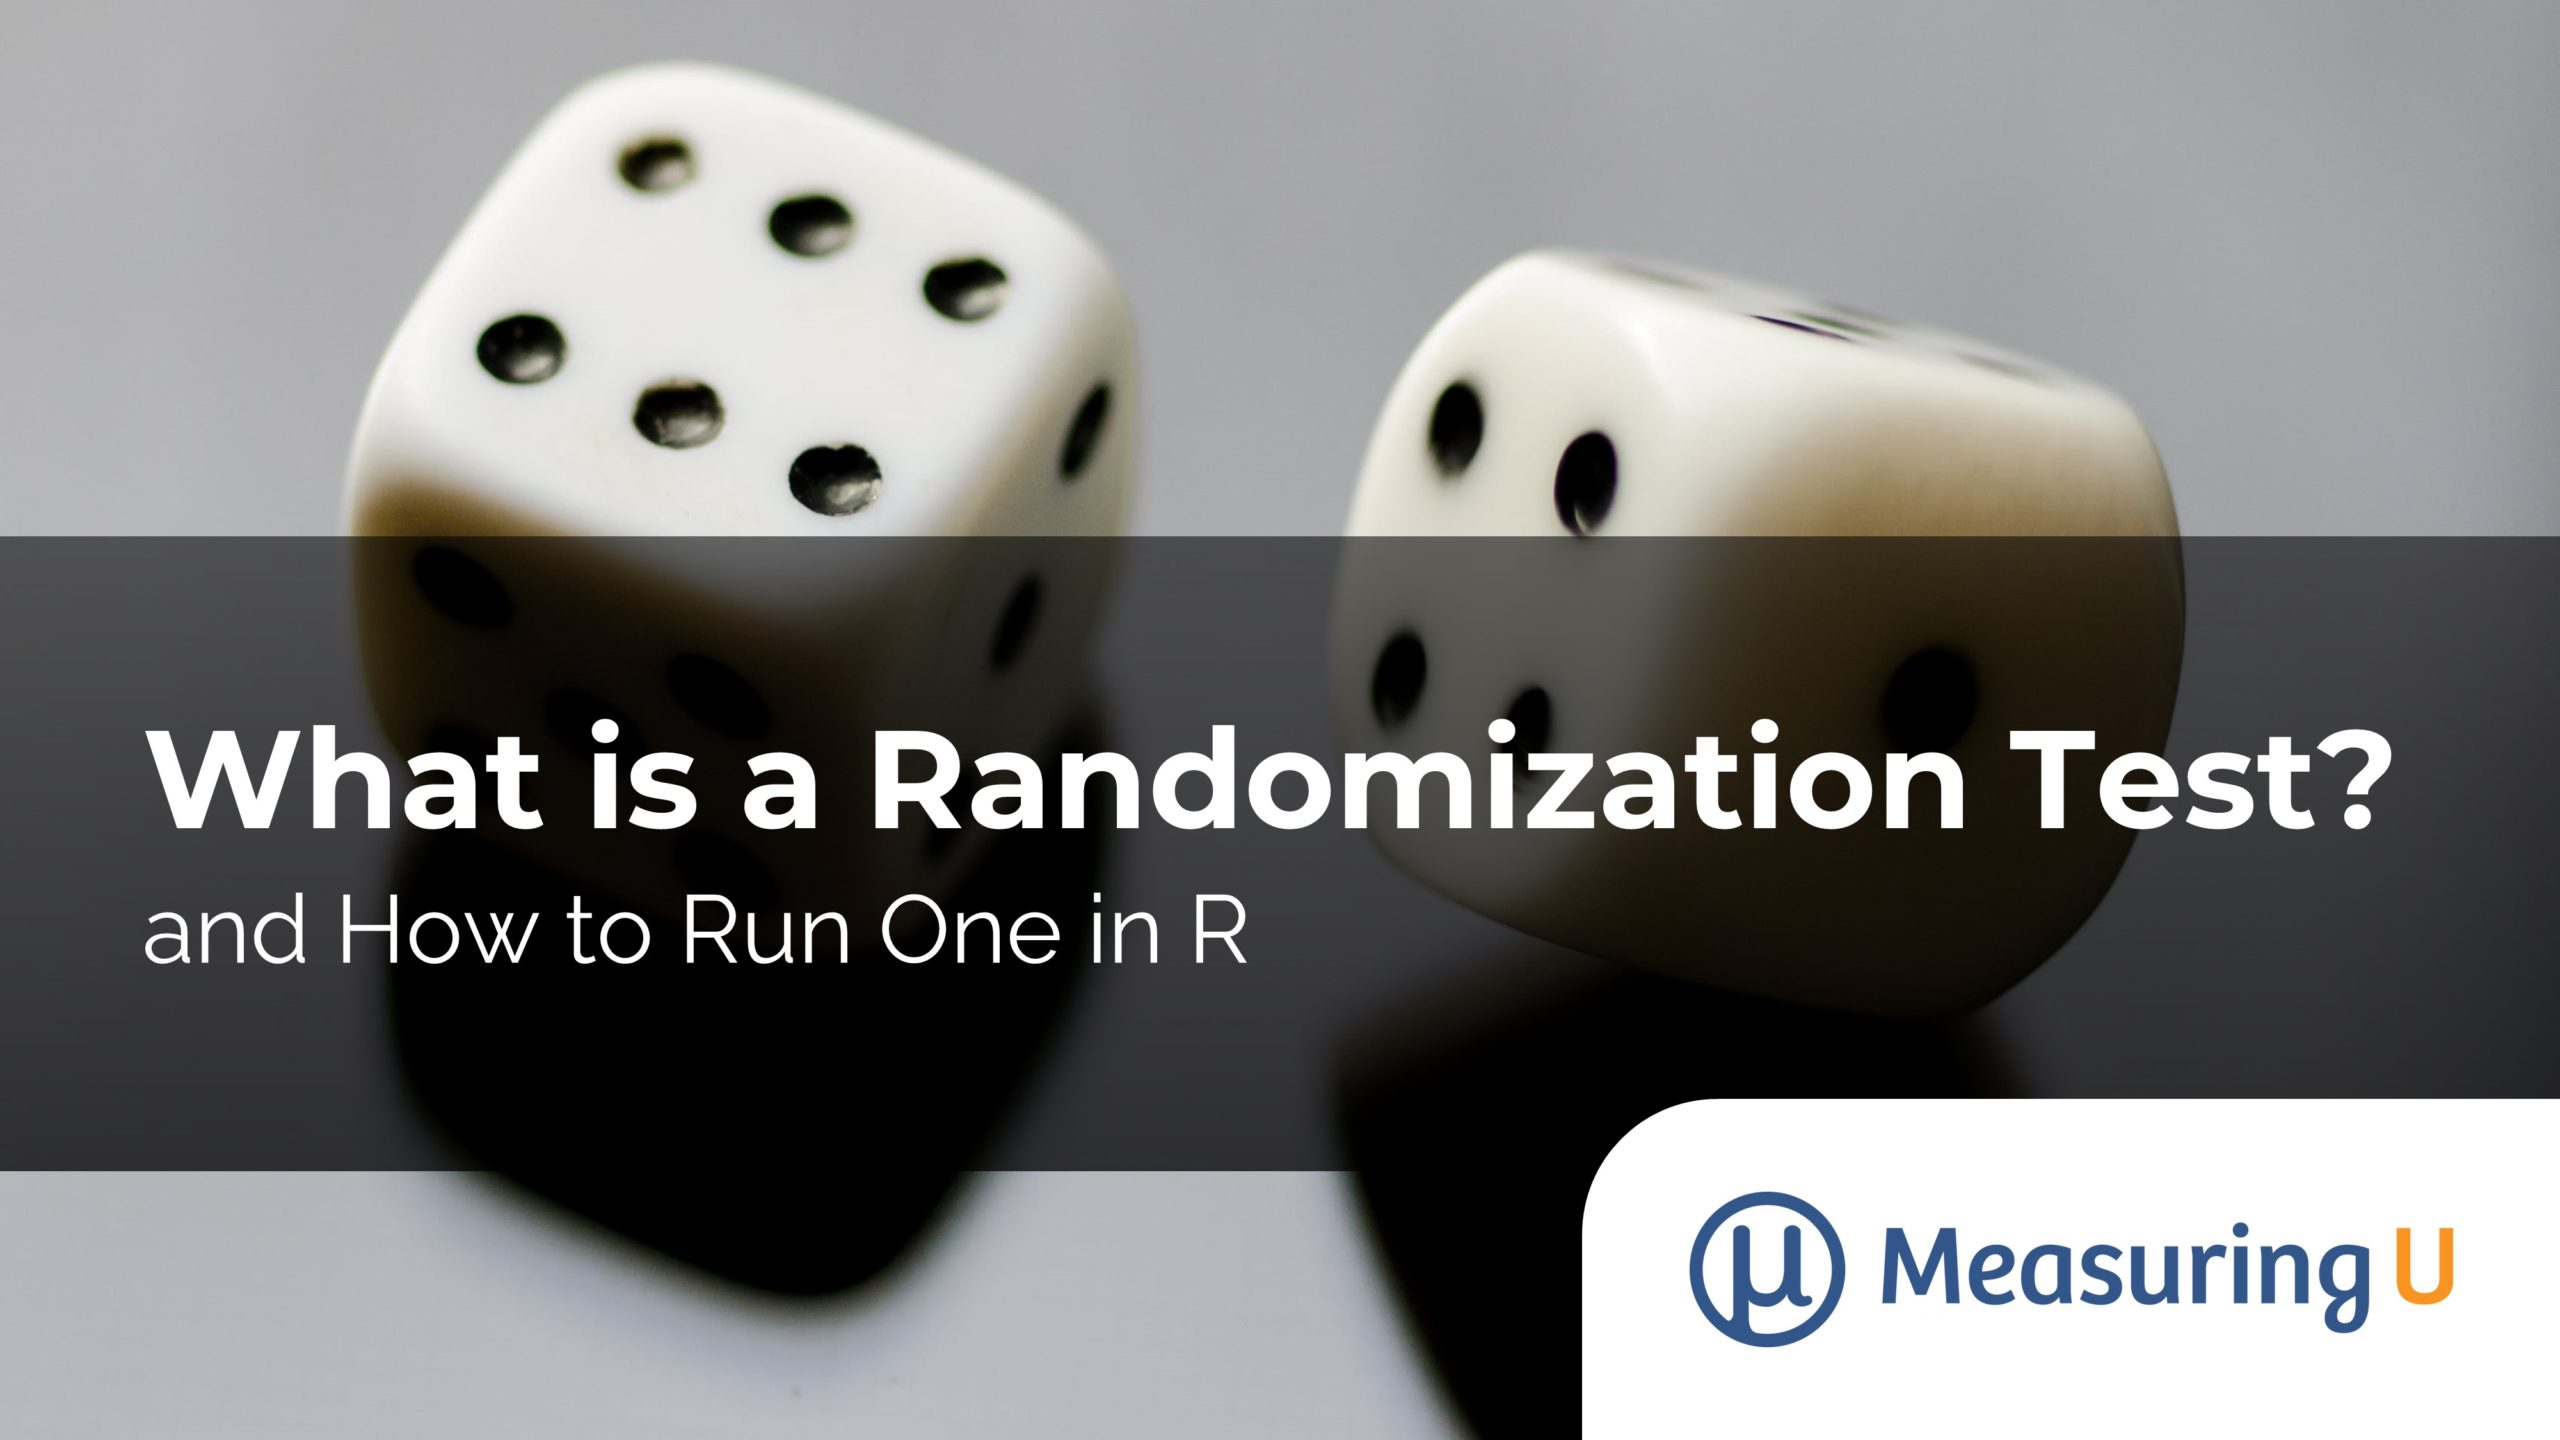 What a Randomization Test Is and How to Run One in R